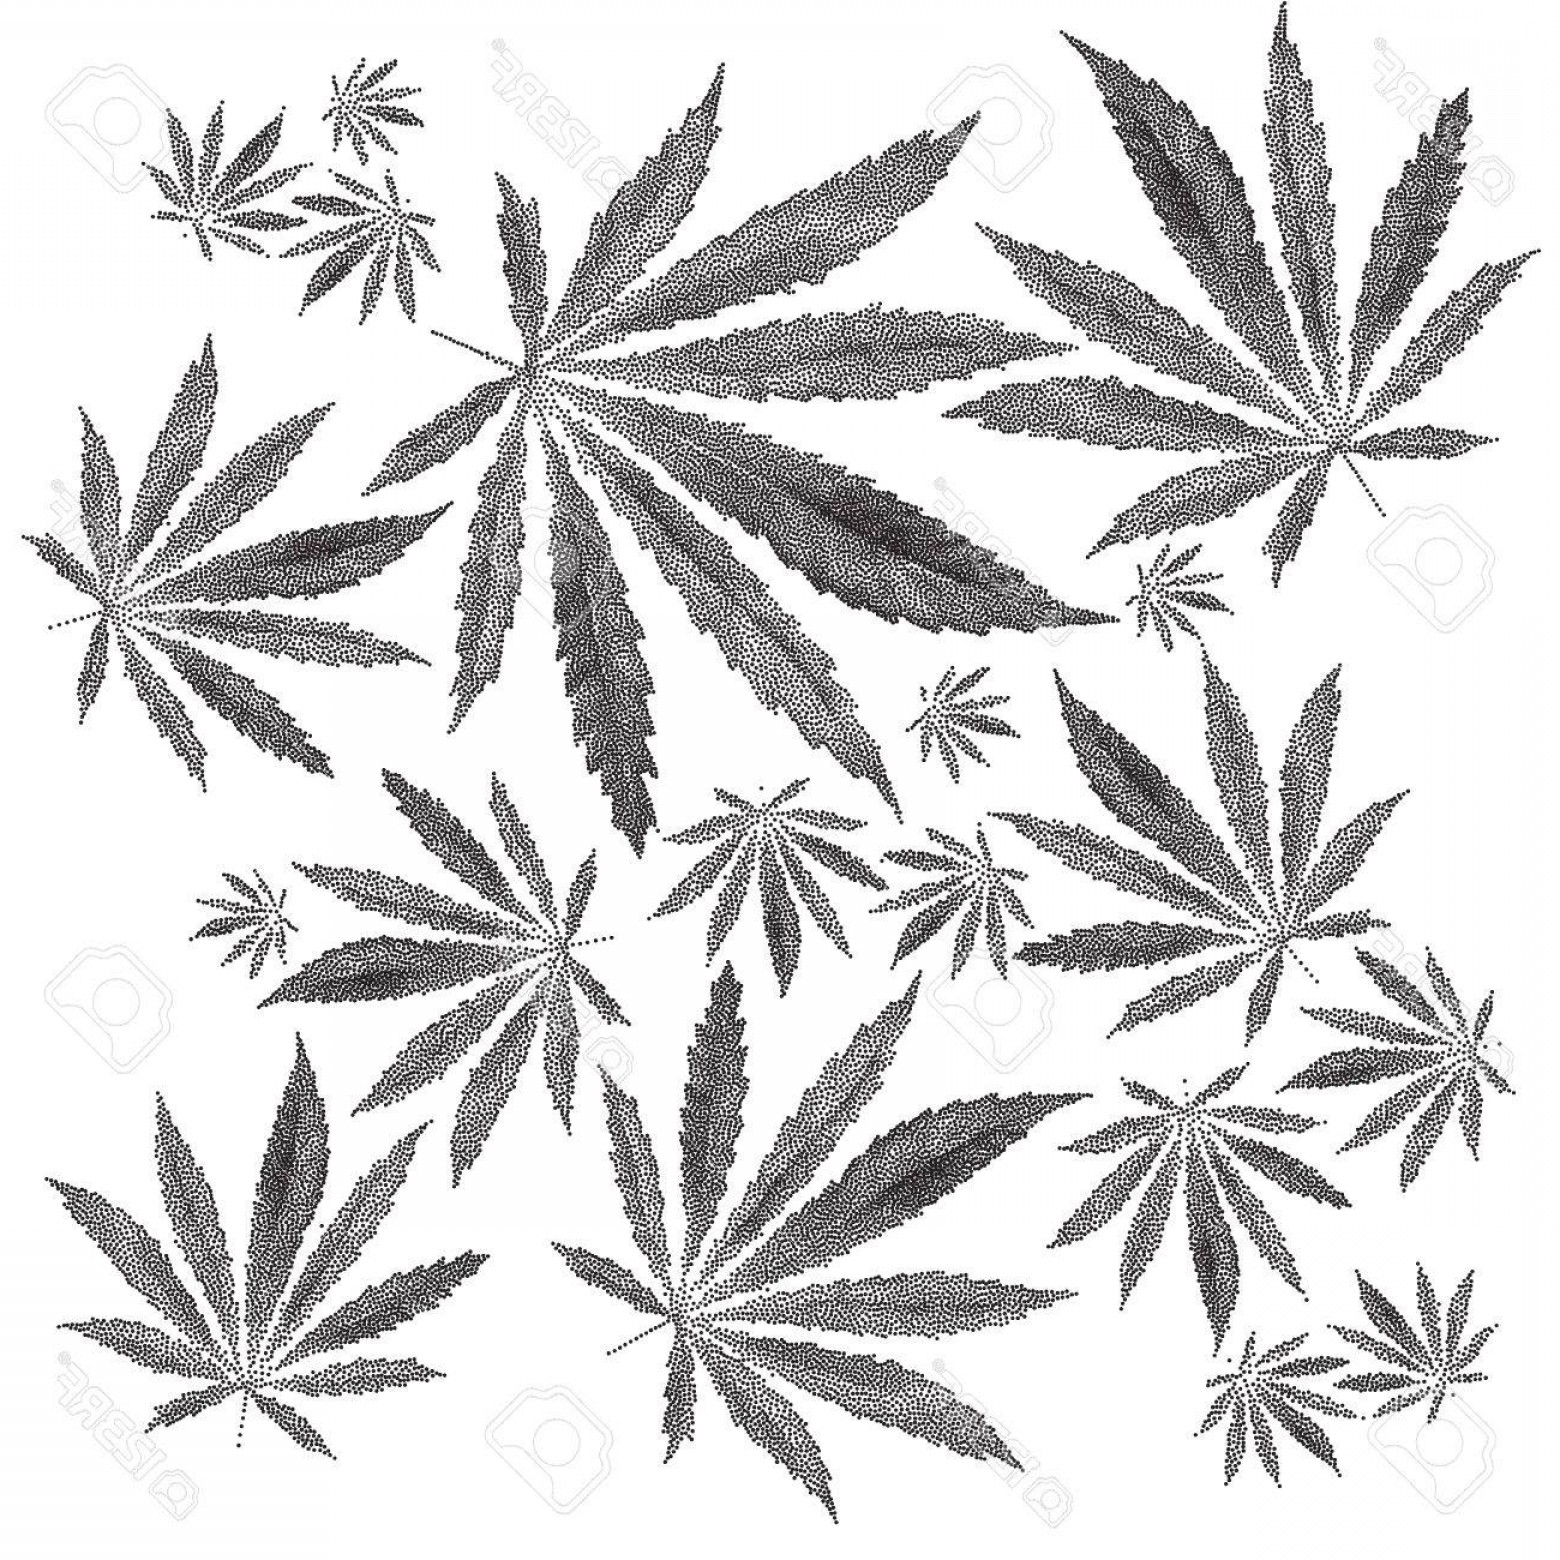 Black And White Vector Image Of Weed Plants: Photostock Vector Vector Illustration Of Dotted Cannabis Sativa Leaf In Old Style Marijuana Hemp Leaf Isolated On Whit